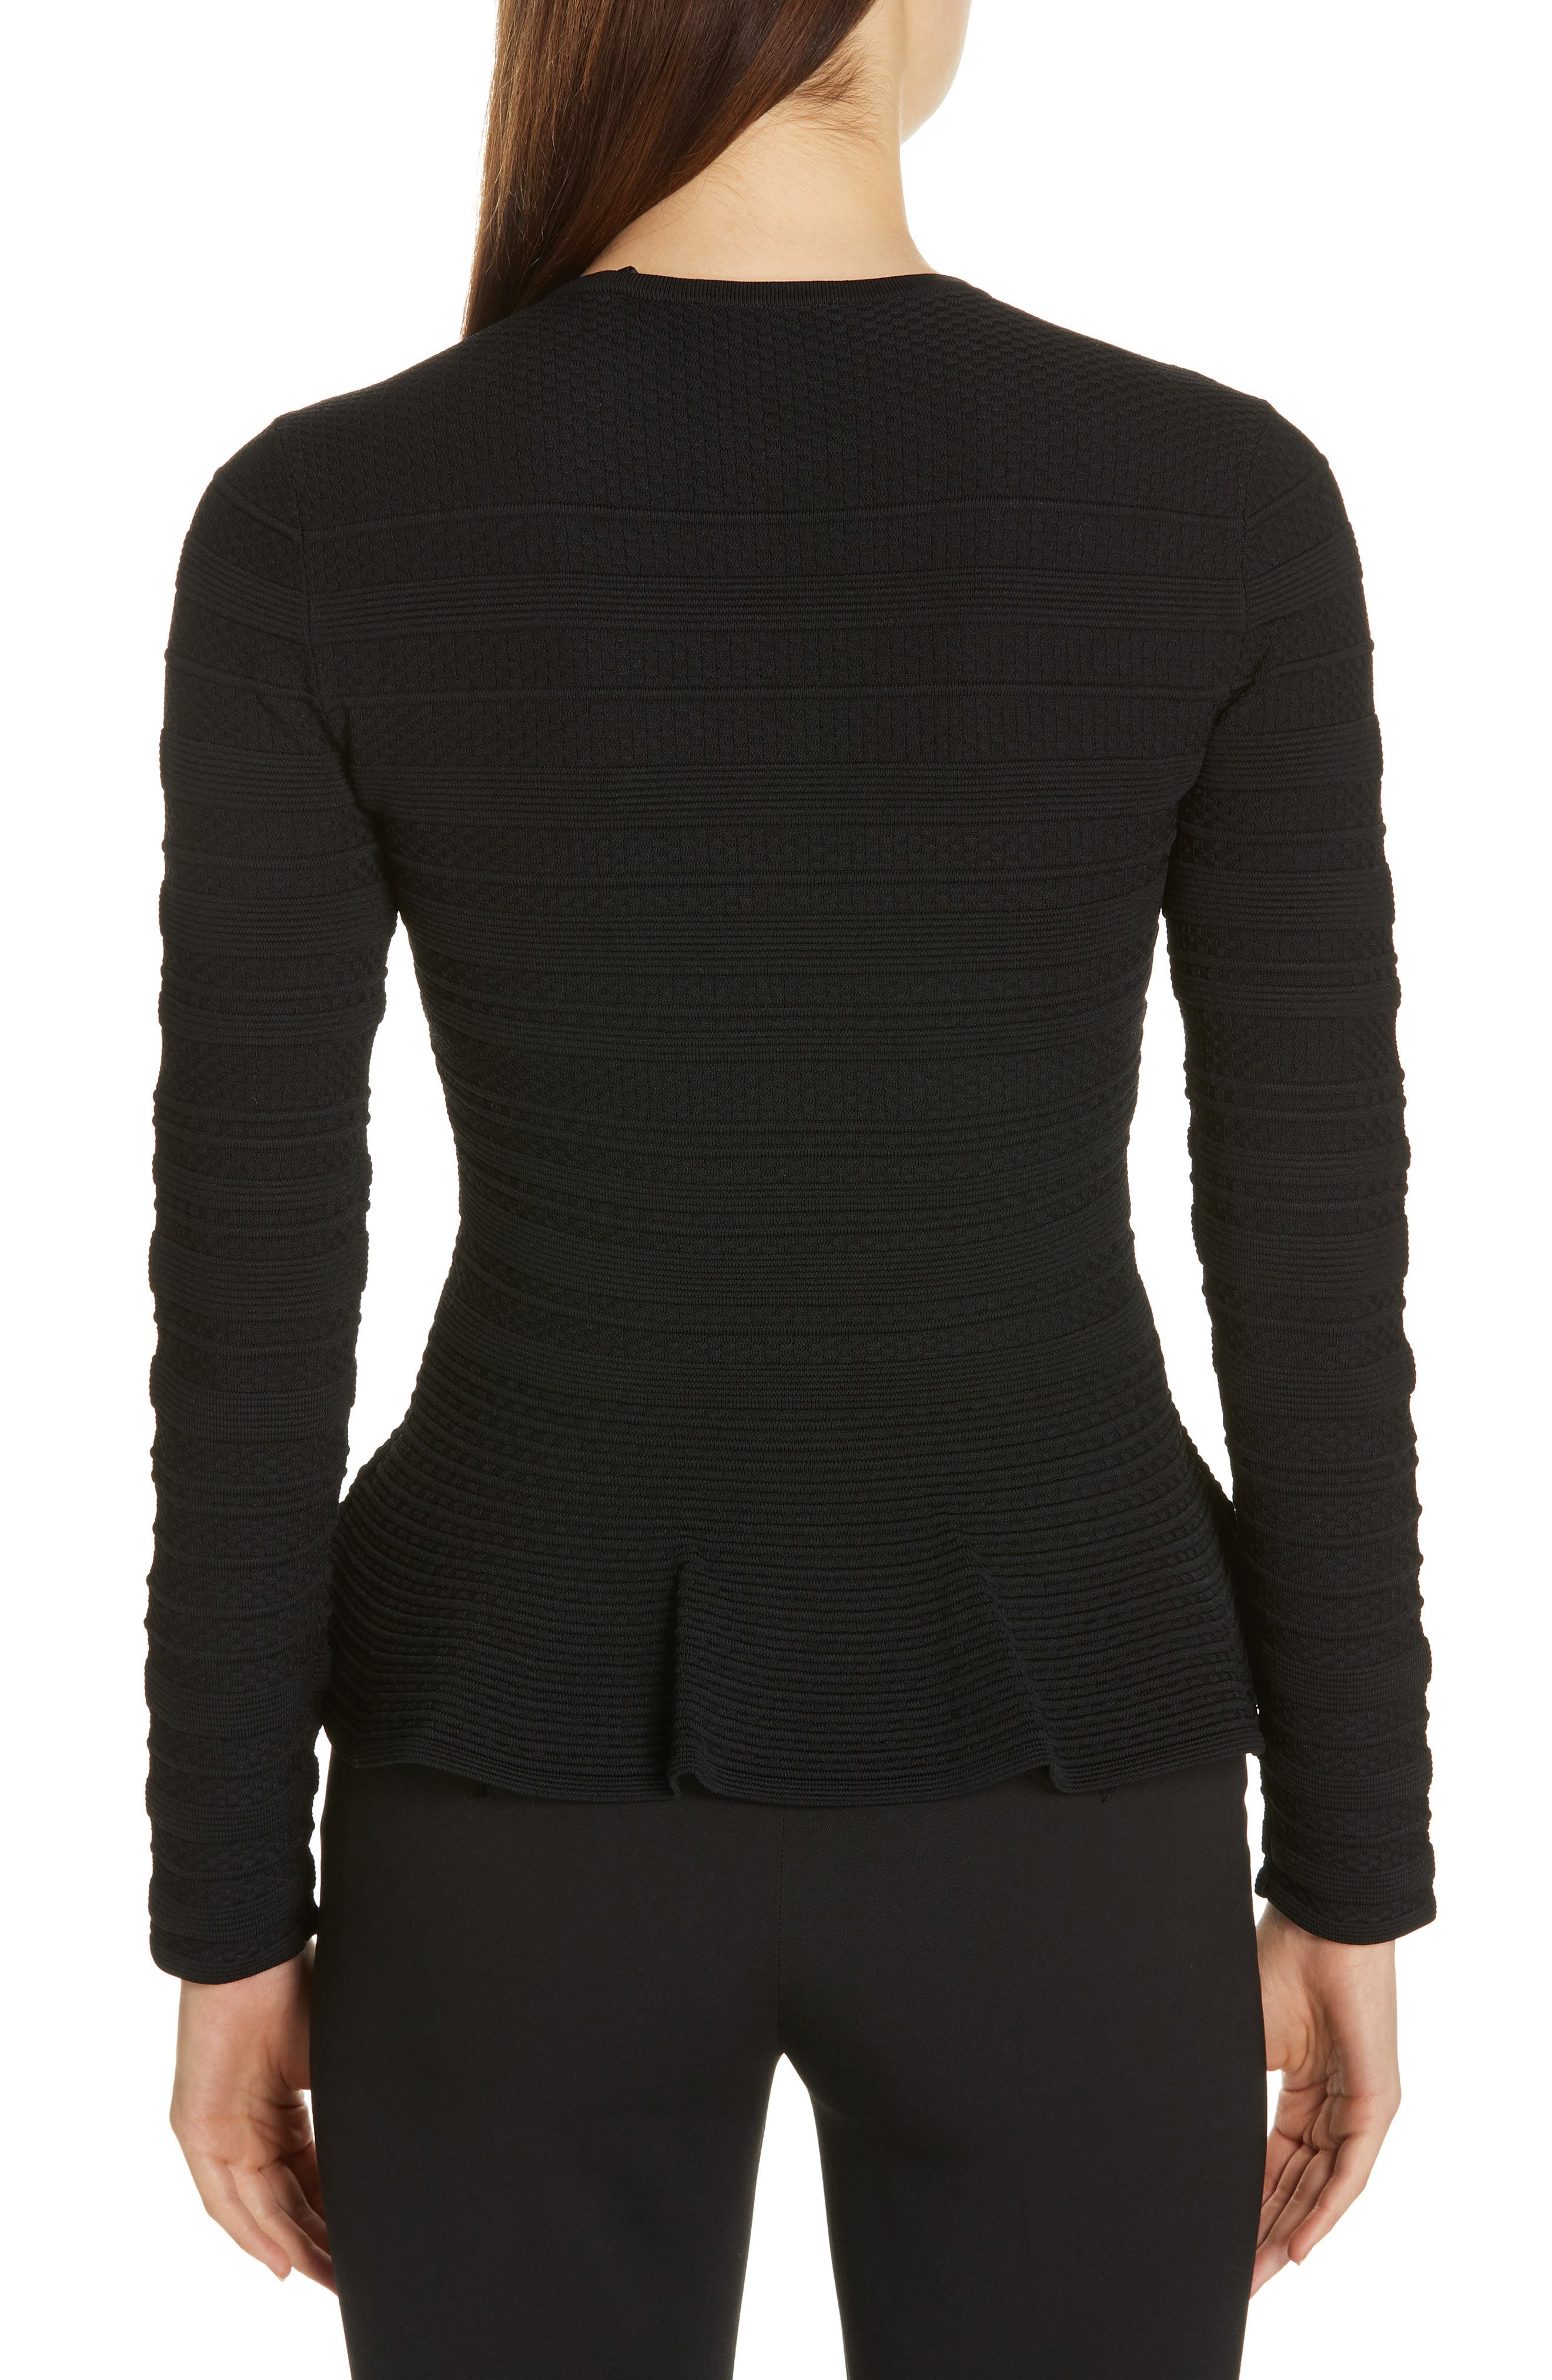 TED BAKER LONDON, Deari Structured Peplum Cardigan, Alternate thumbnail 2, color, 001